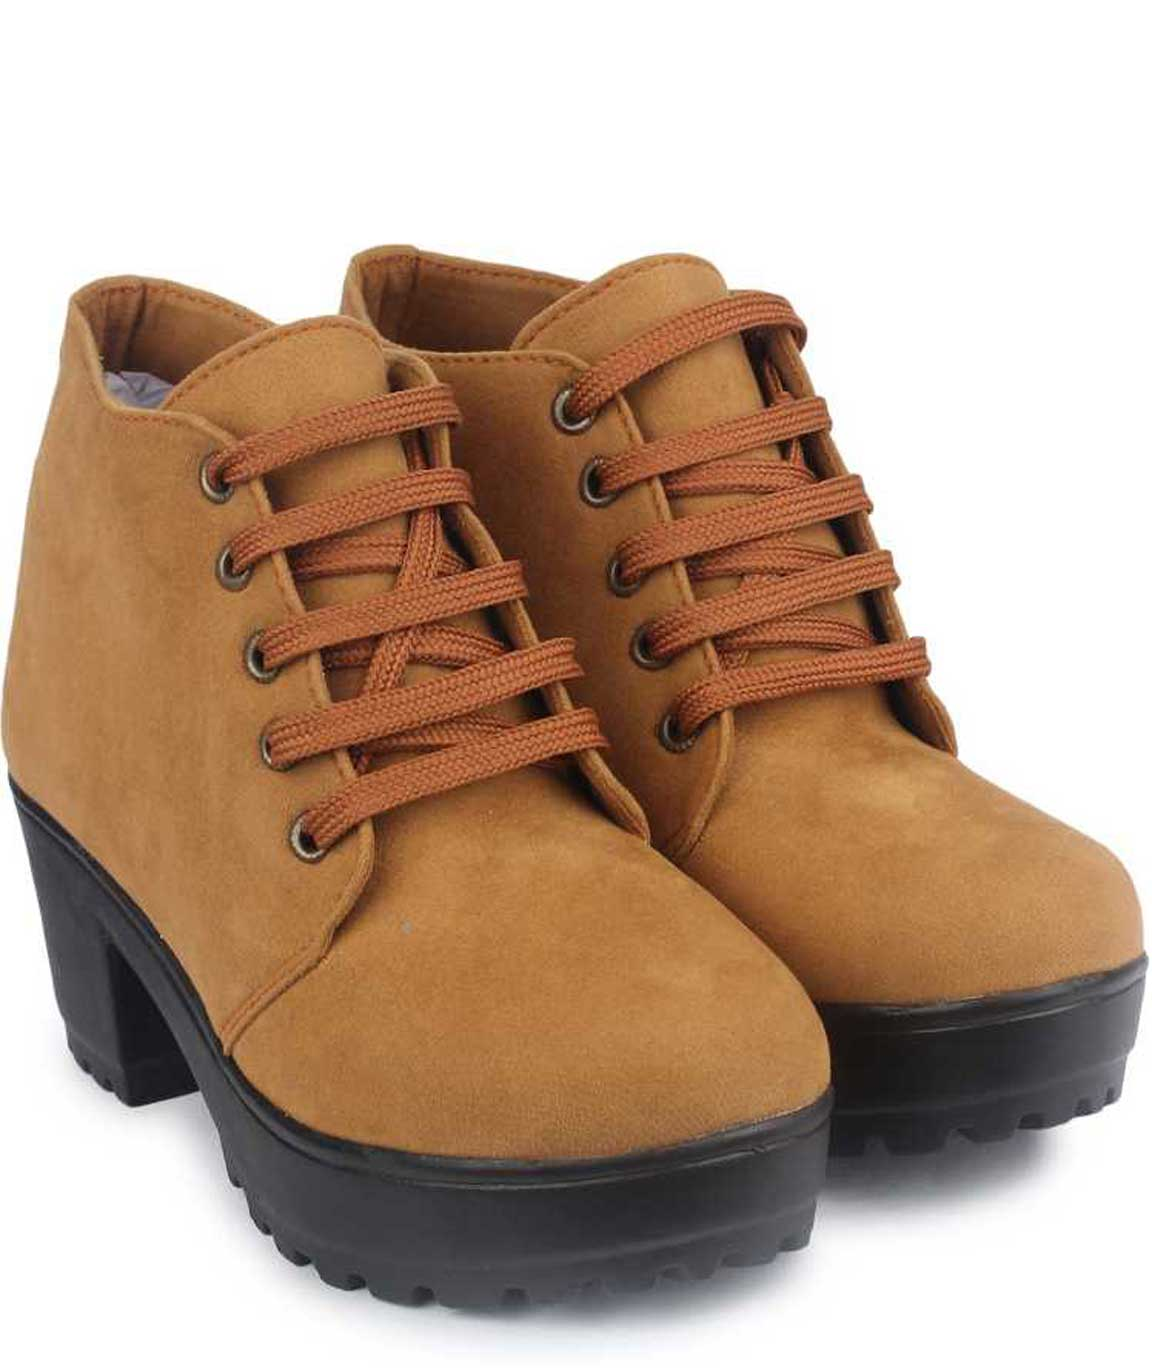 BOOT FOR WOMEN ( TAN-BROWN )